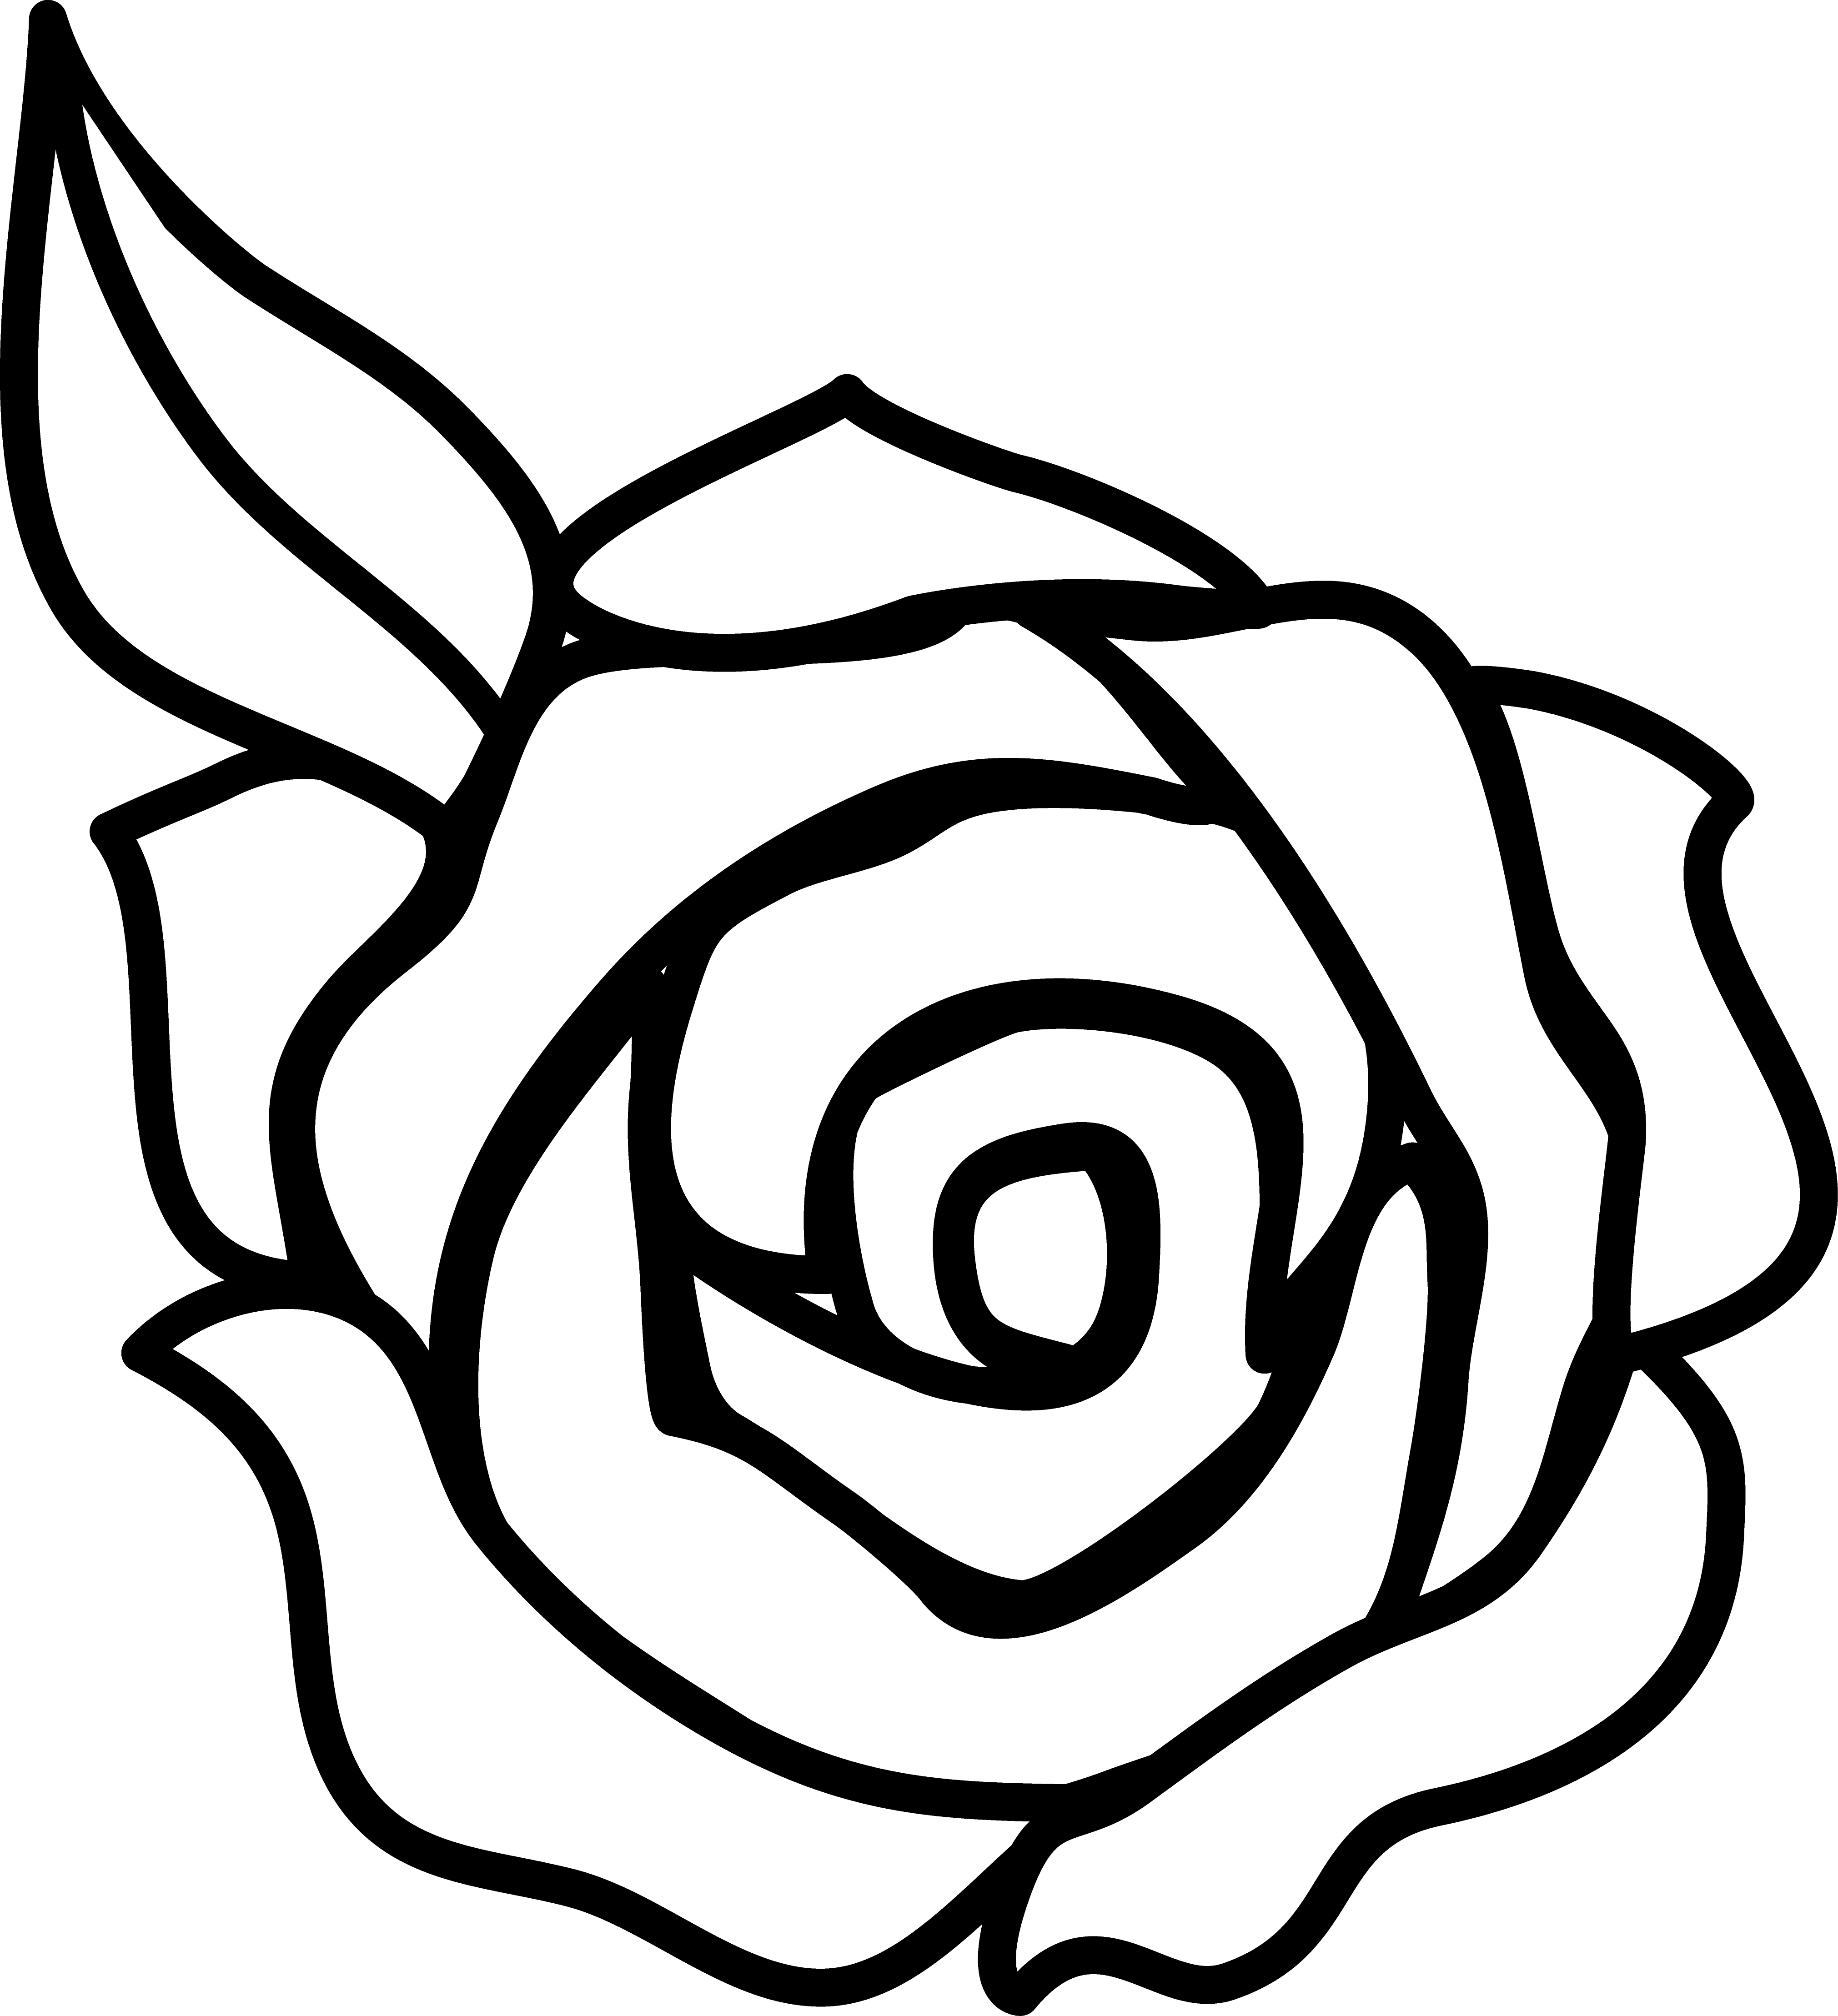 Free Borders Flowers Rose Clip Art with No Background , Page 2 - ClipartKey